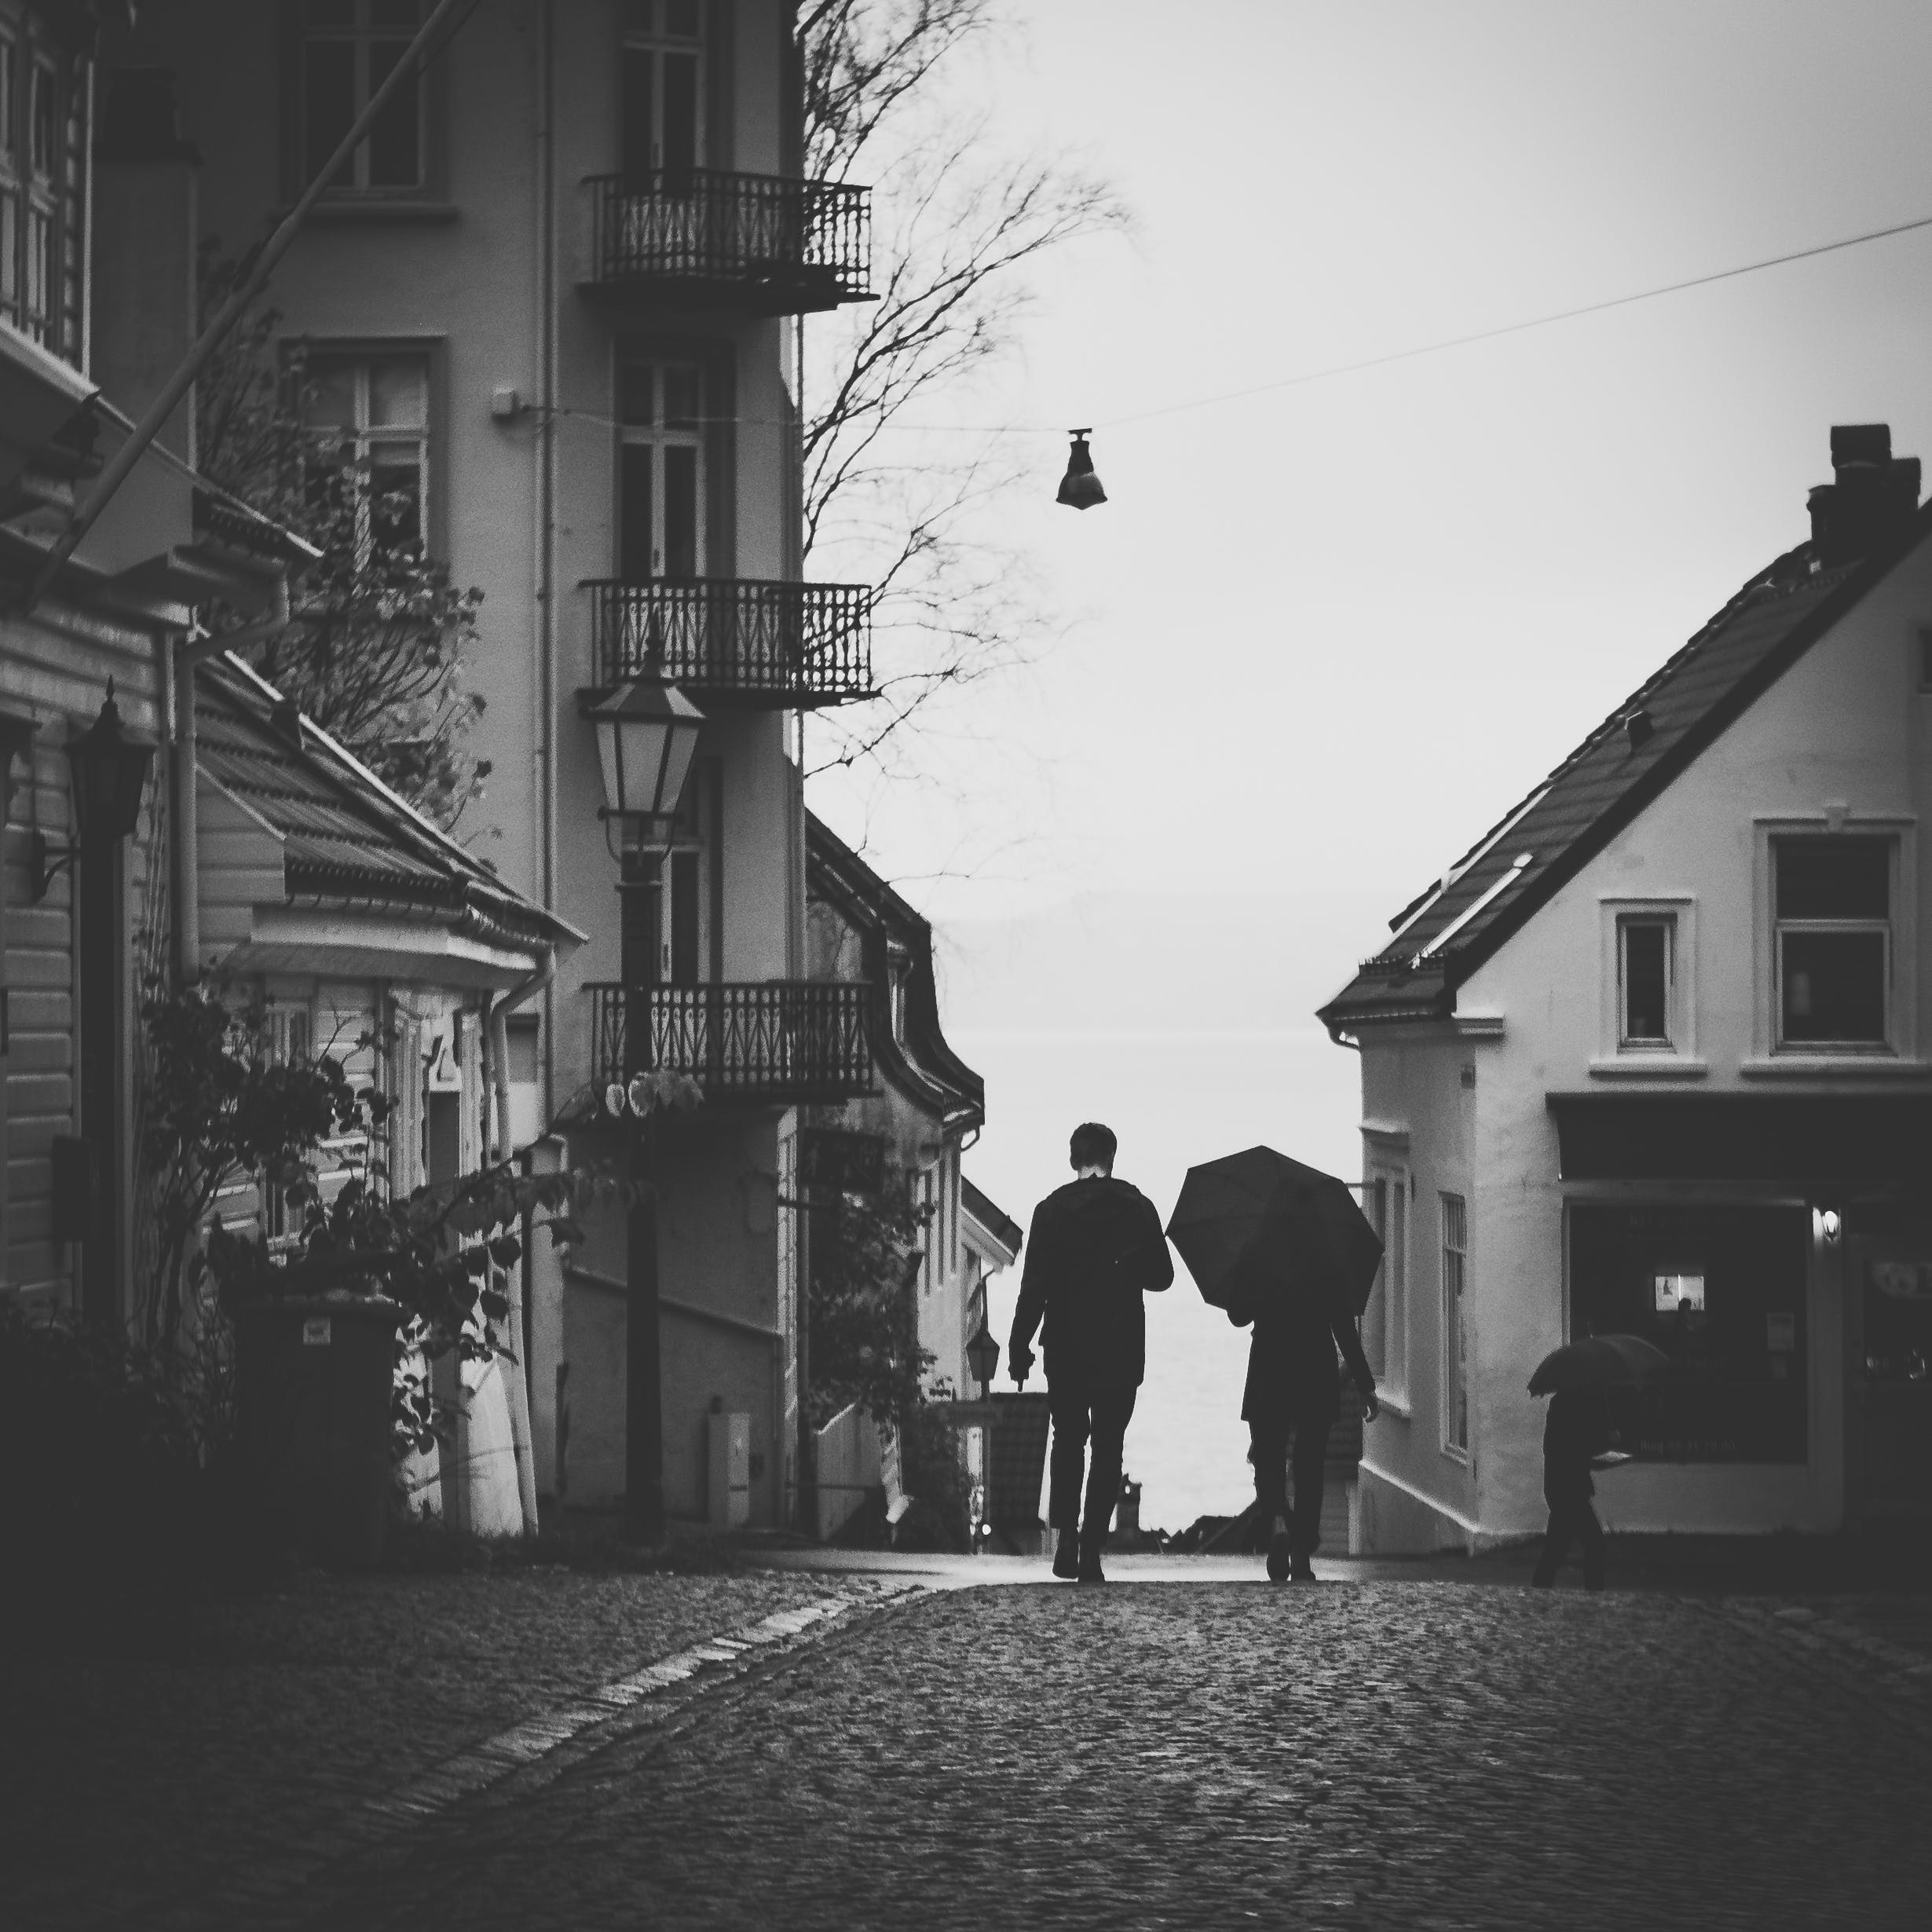 Grayscale Photo Of Man Beside Woman Under Umbrella Walking On Pavement